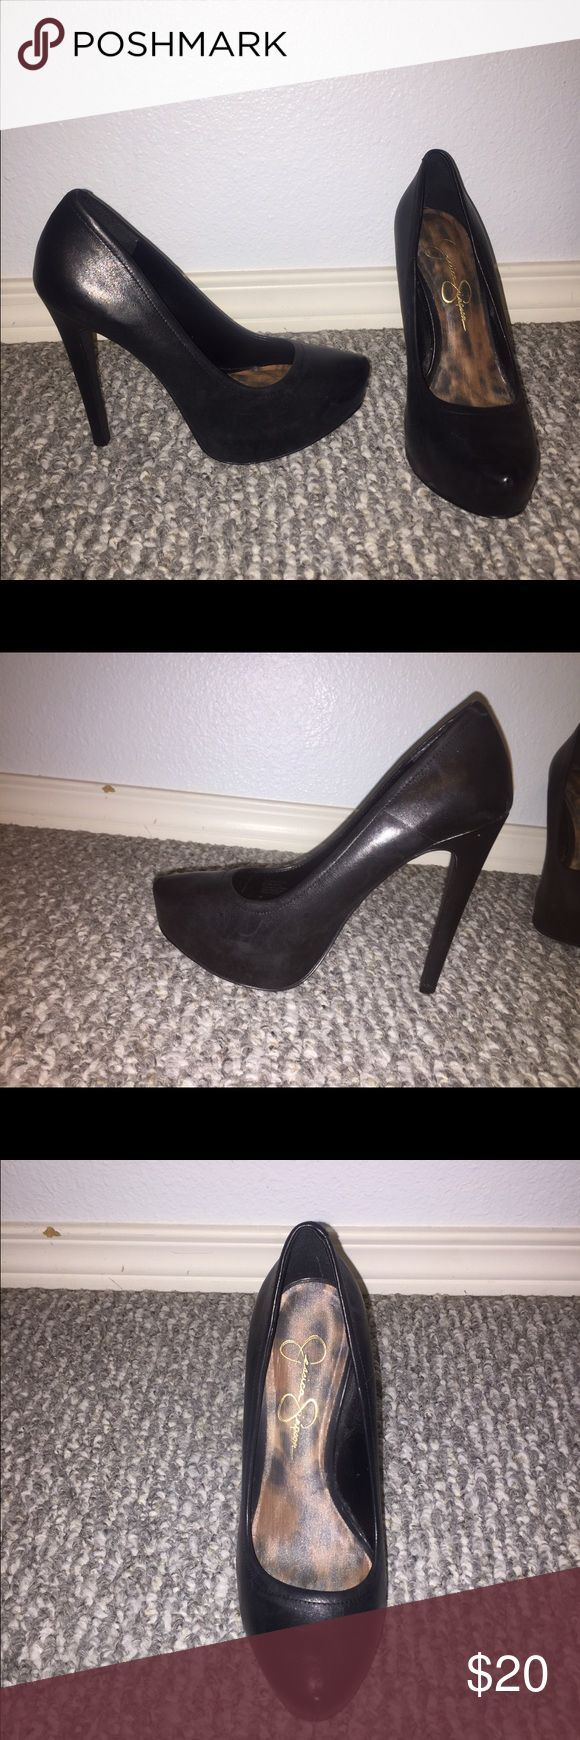 Jessica Simpson pumps 6.5 Great condition black Jessica Simpson pumps. Size 6.5 Jessica Simpson Shoes Heels